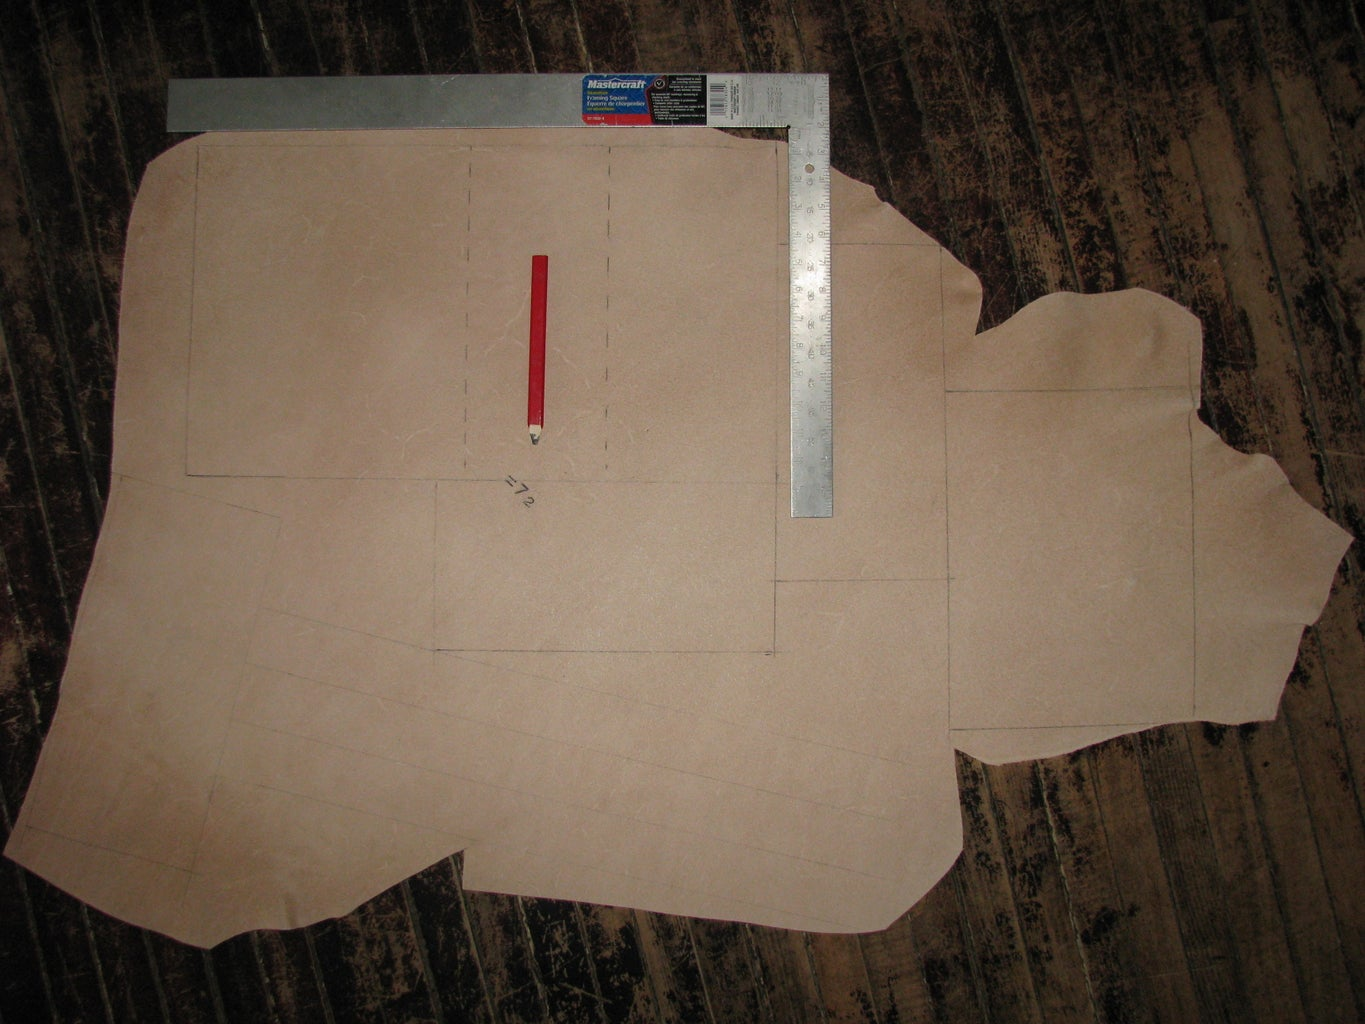 Obtain Material From Tandy Leather and Mark Pieces for Cutting